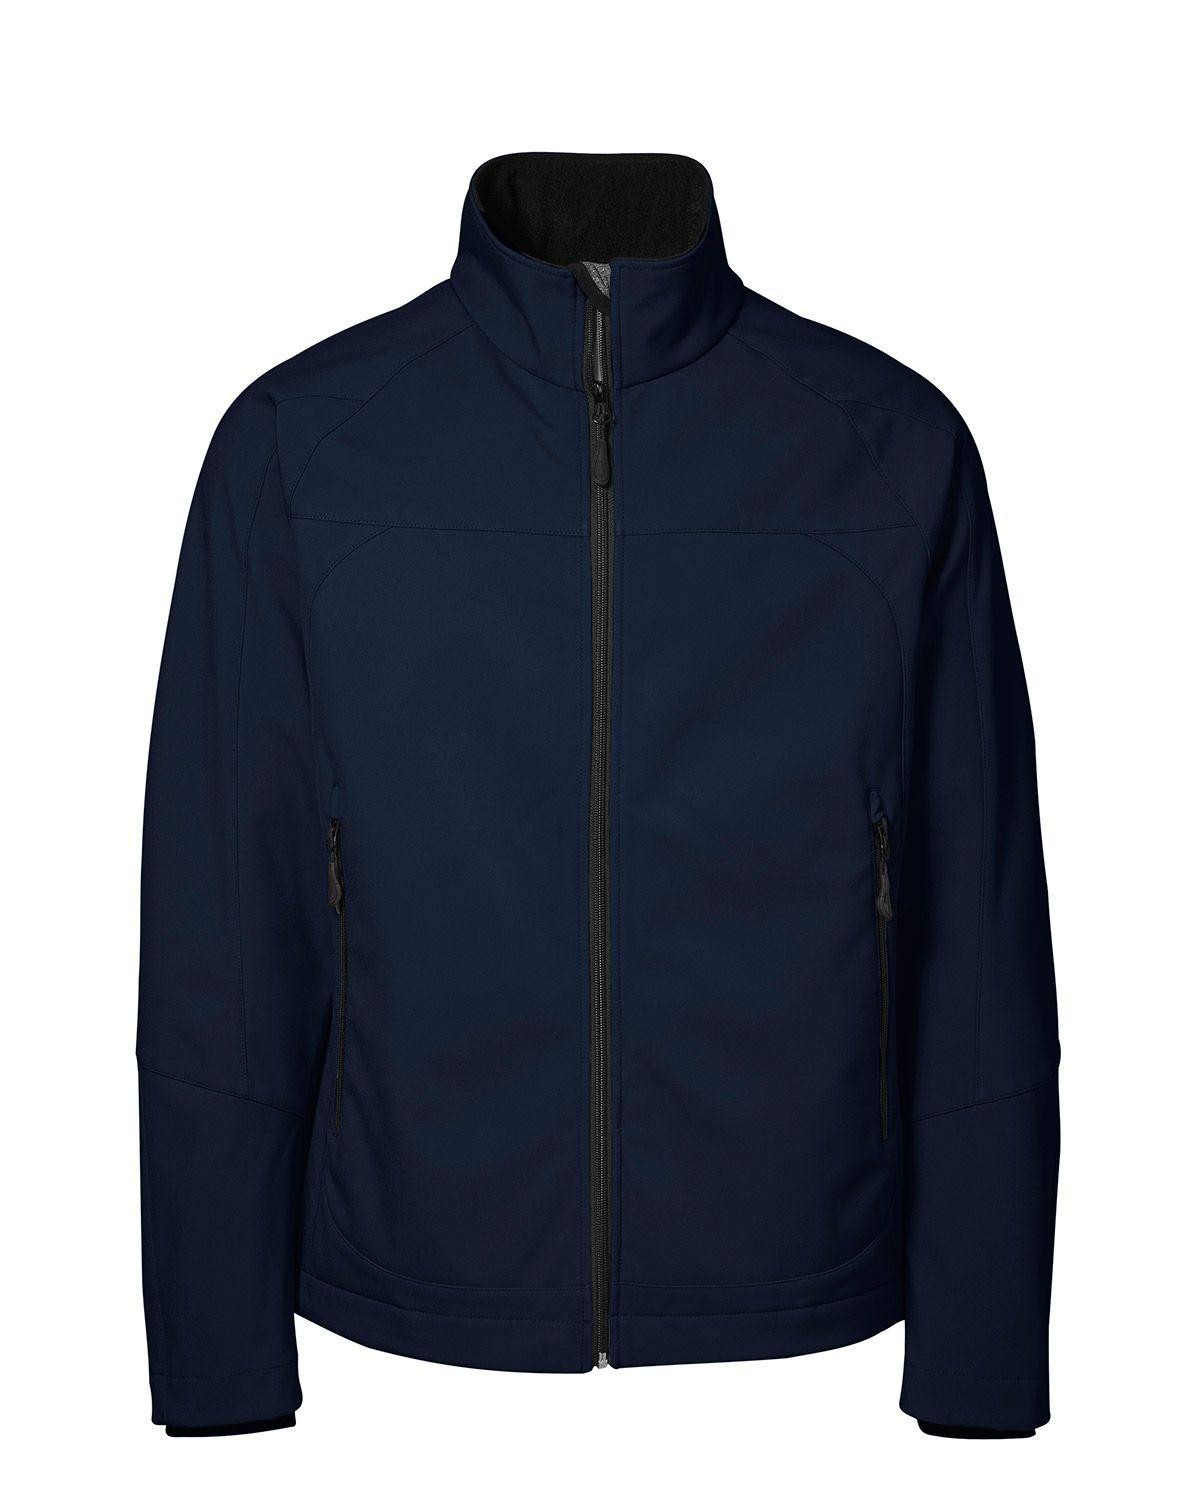 Image of   ID Funktionel Softshell Jakke (Navy, 2XL)